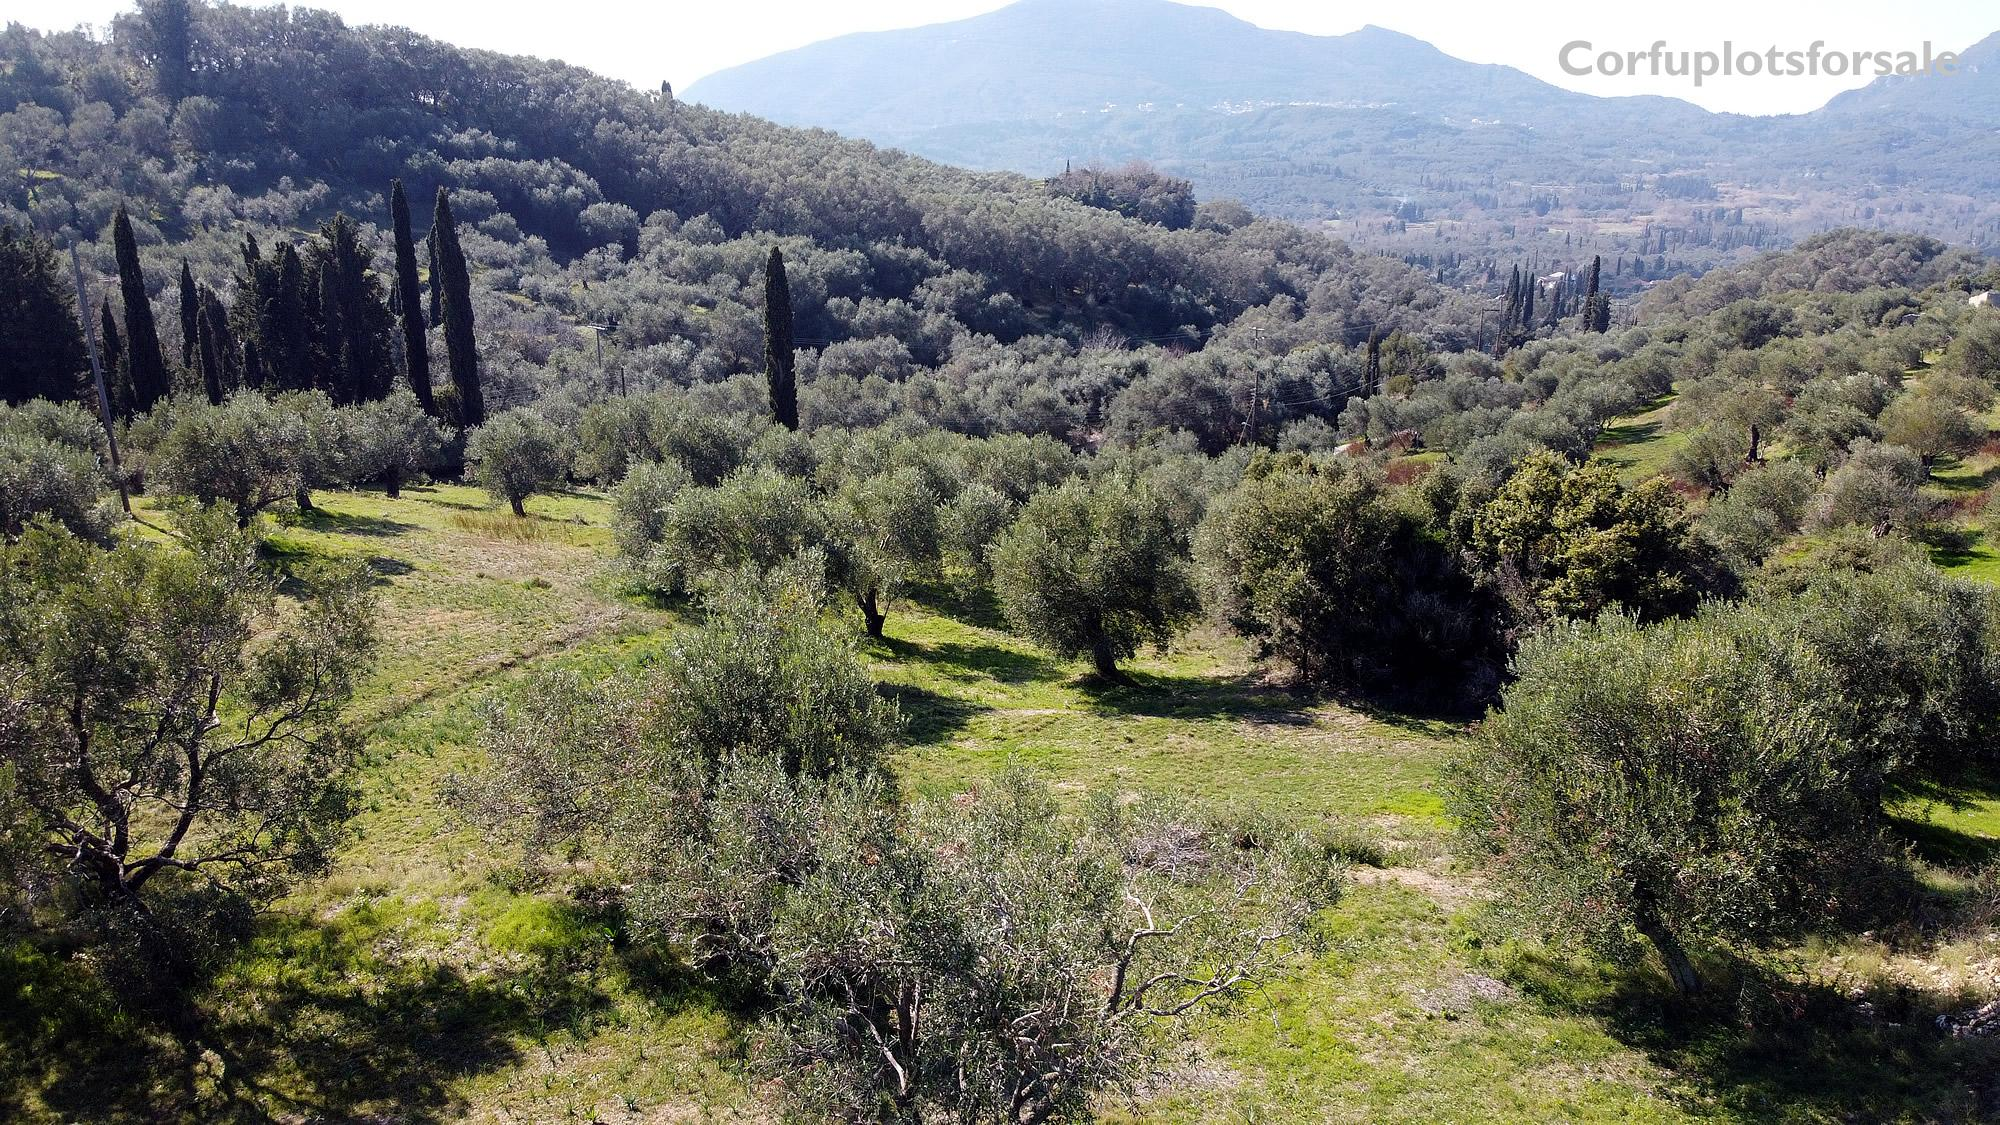 A plot on a hill full of olive trees